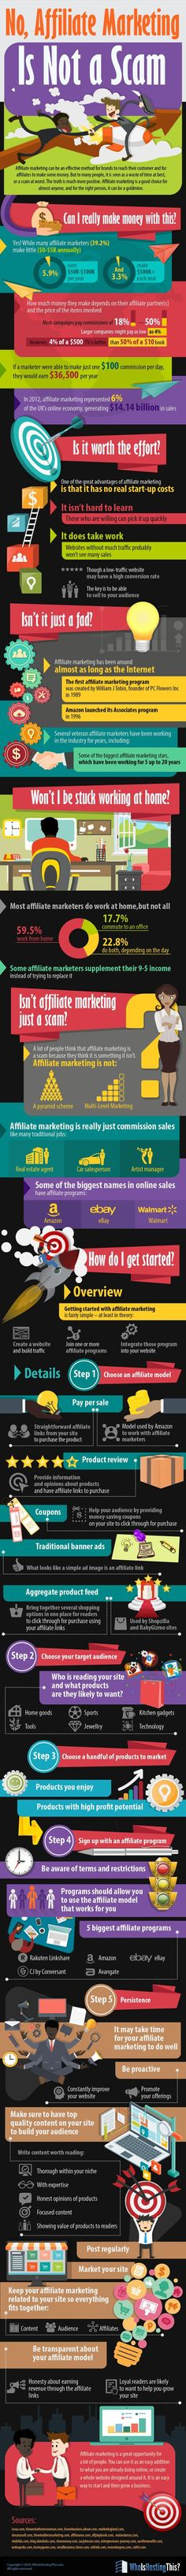 No, Affiliate Marketing Is Not a Scam #Infographic #Business #Marketing http://itz-my.com